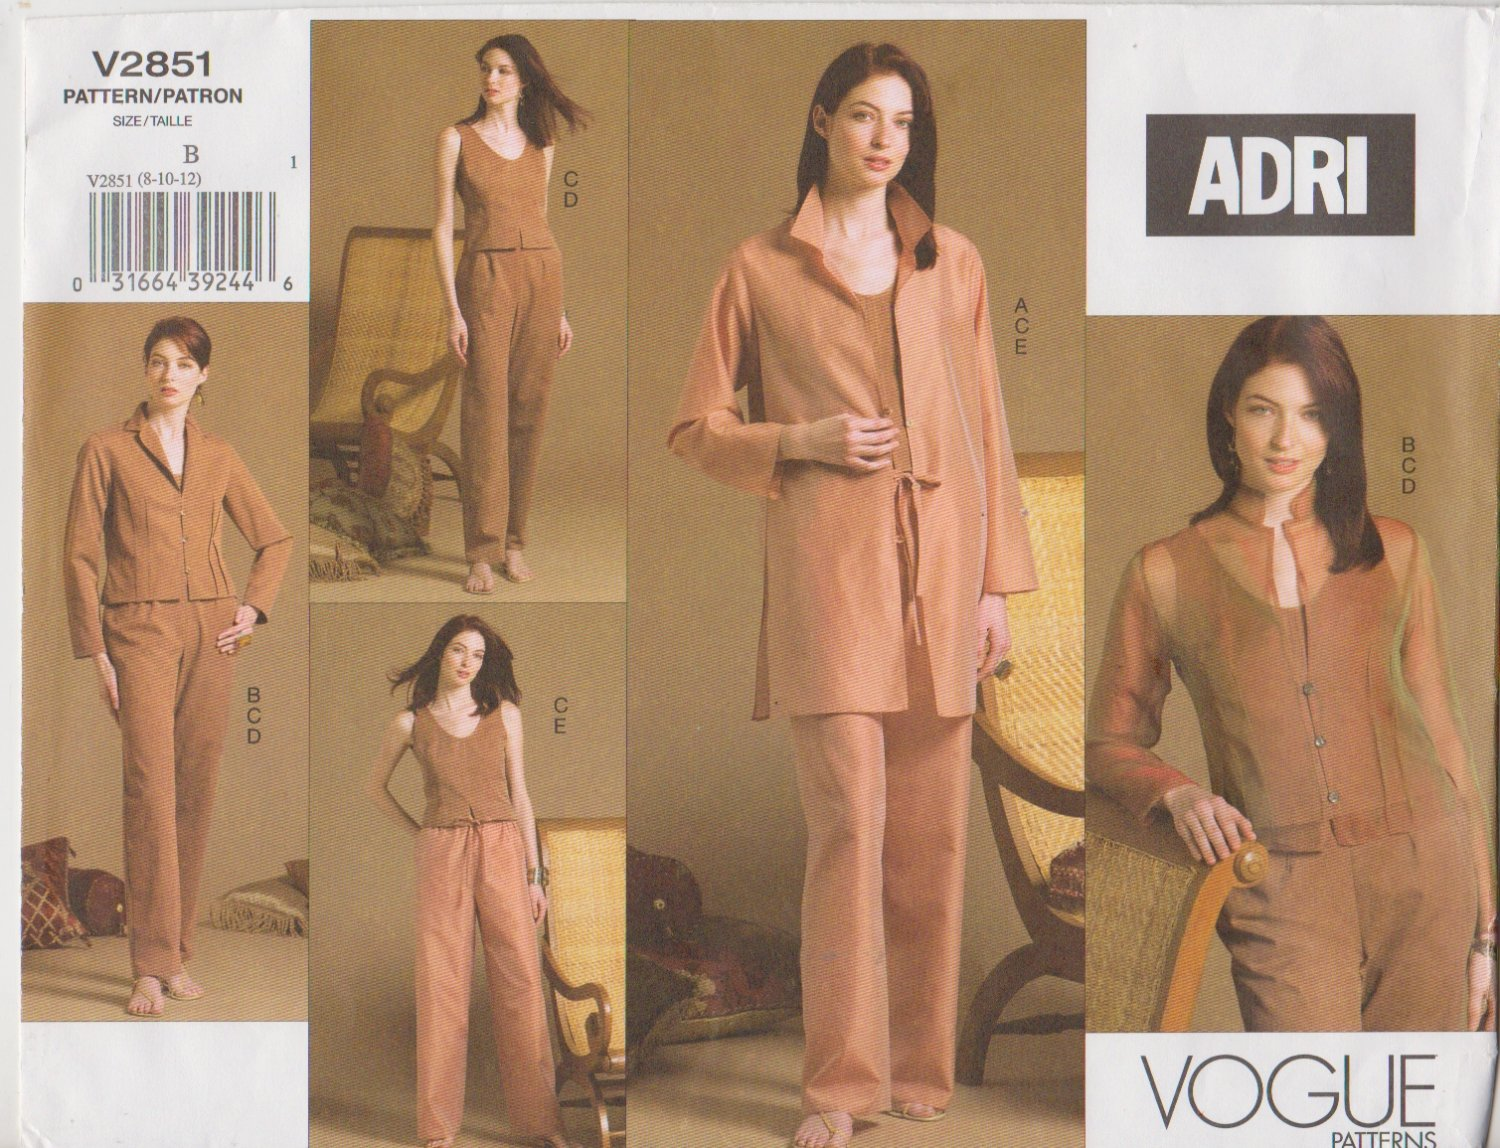 Vogue Sewing Pattern 2851 Misses Size 8-10-12 Easy Wardrobe ADRI Jacket Pants Top Shirt